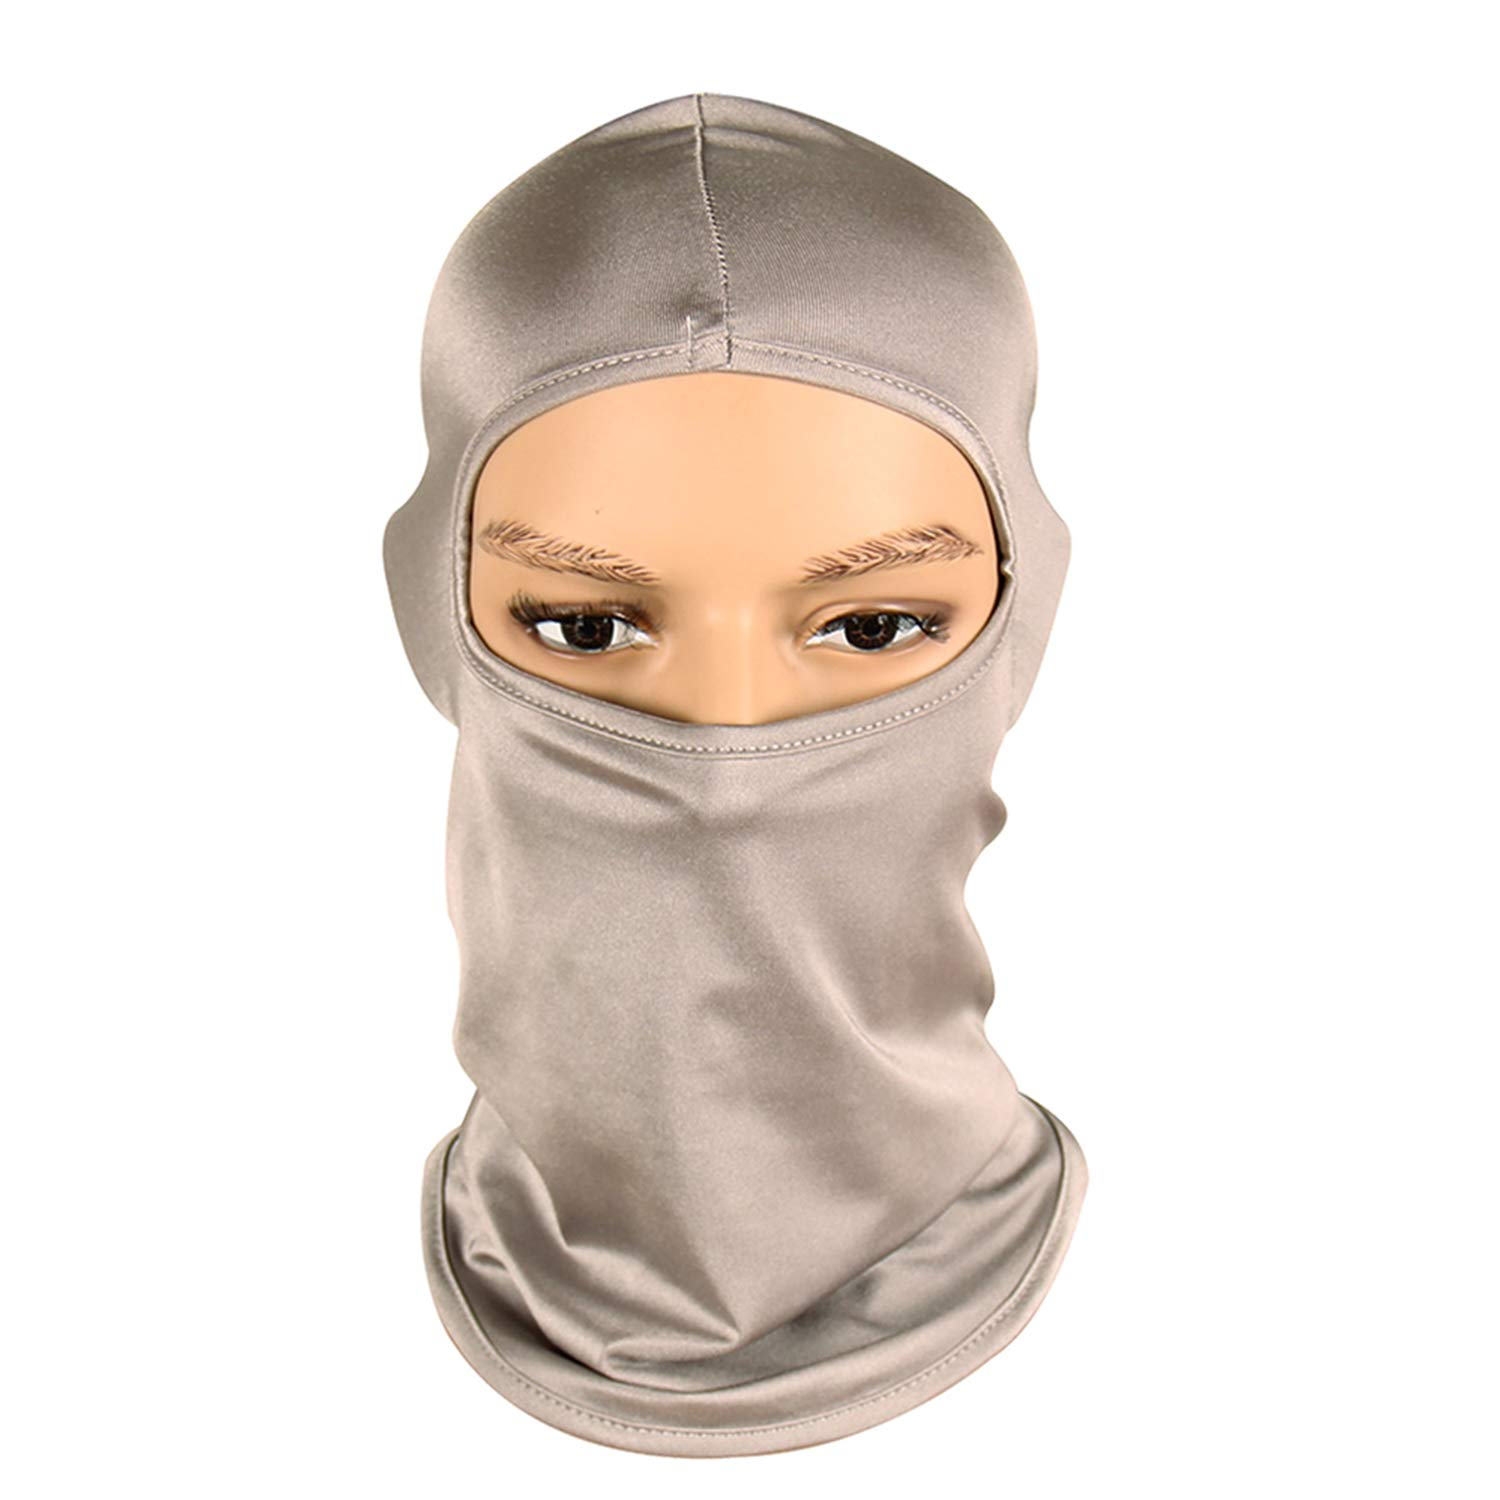 Full Face Mask Breathable Outdoor Motocross Motorcycle UV Protection Head Cover